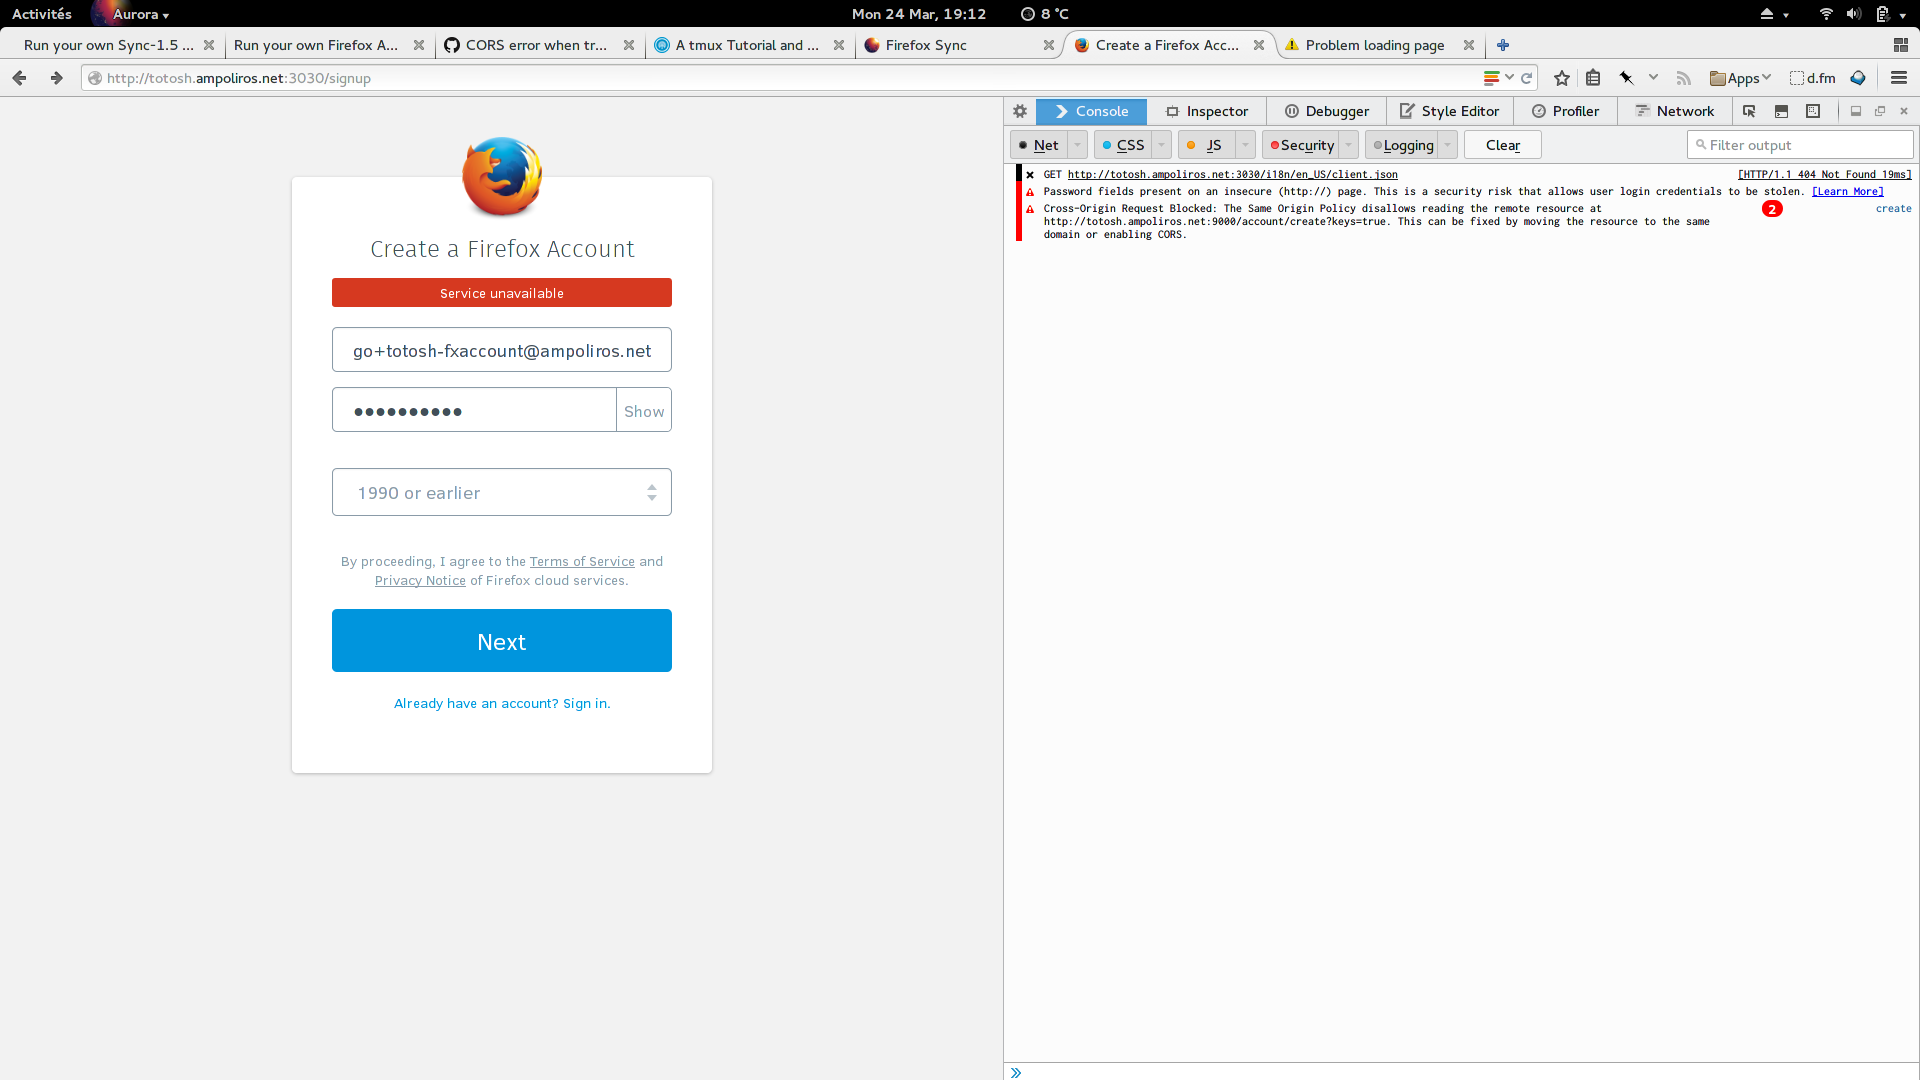 Running the new Firefox sync